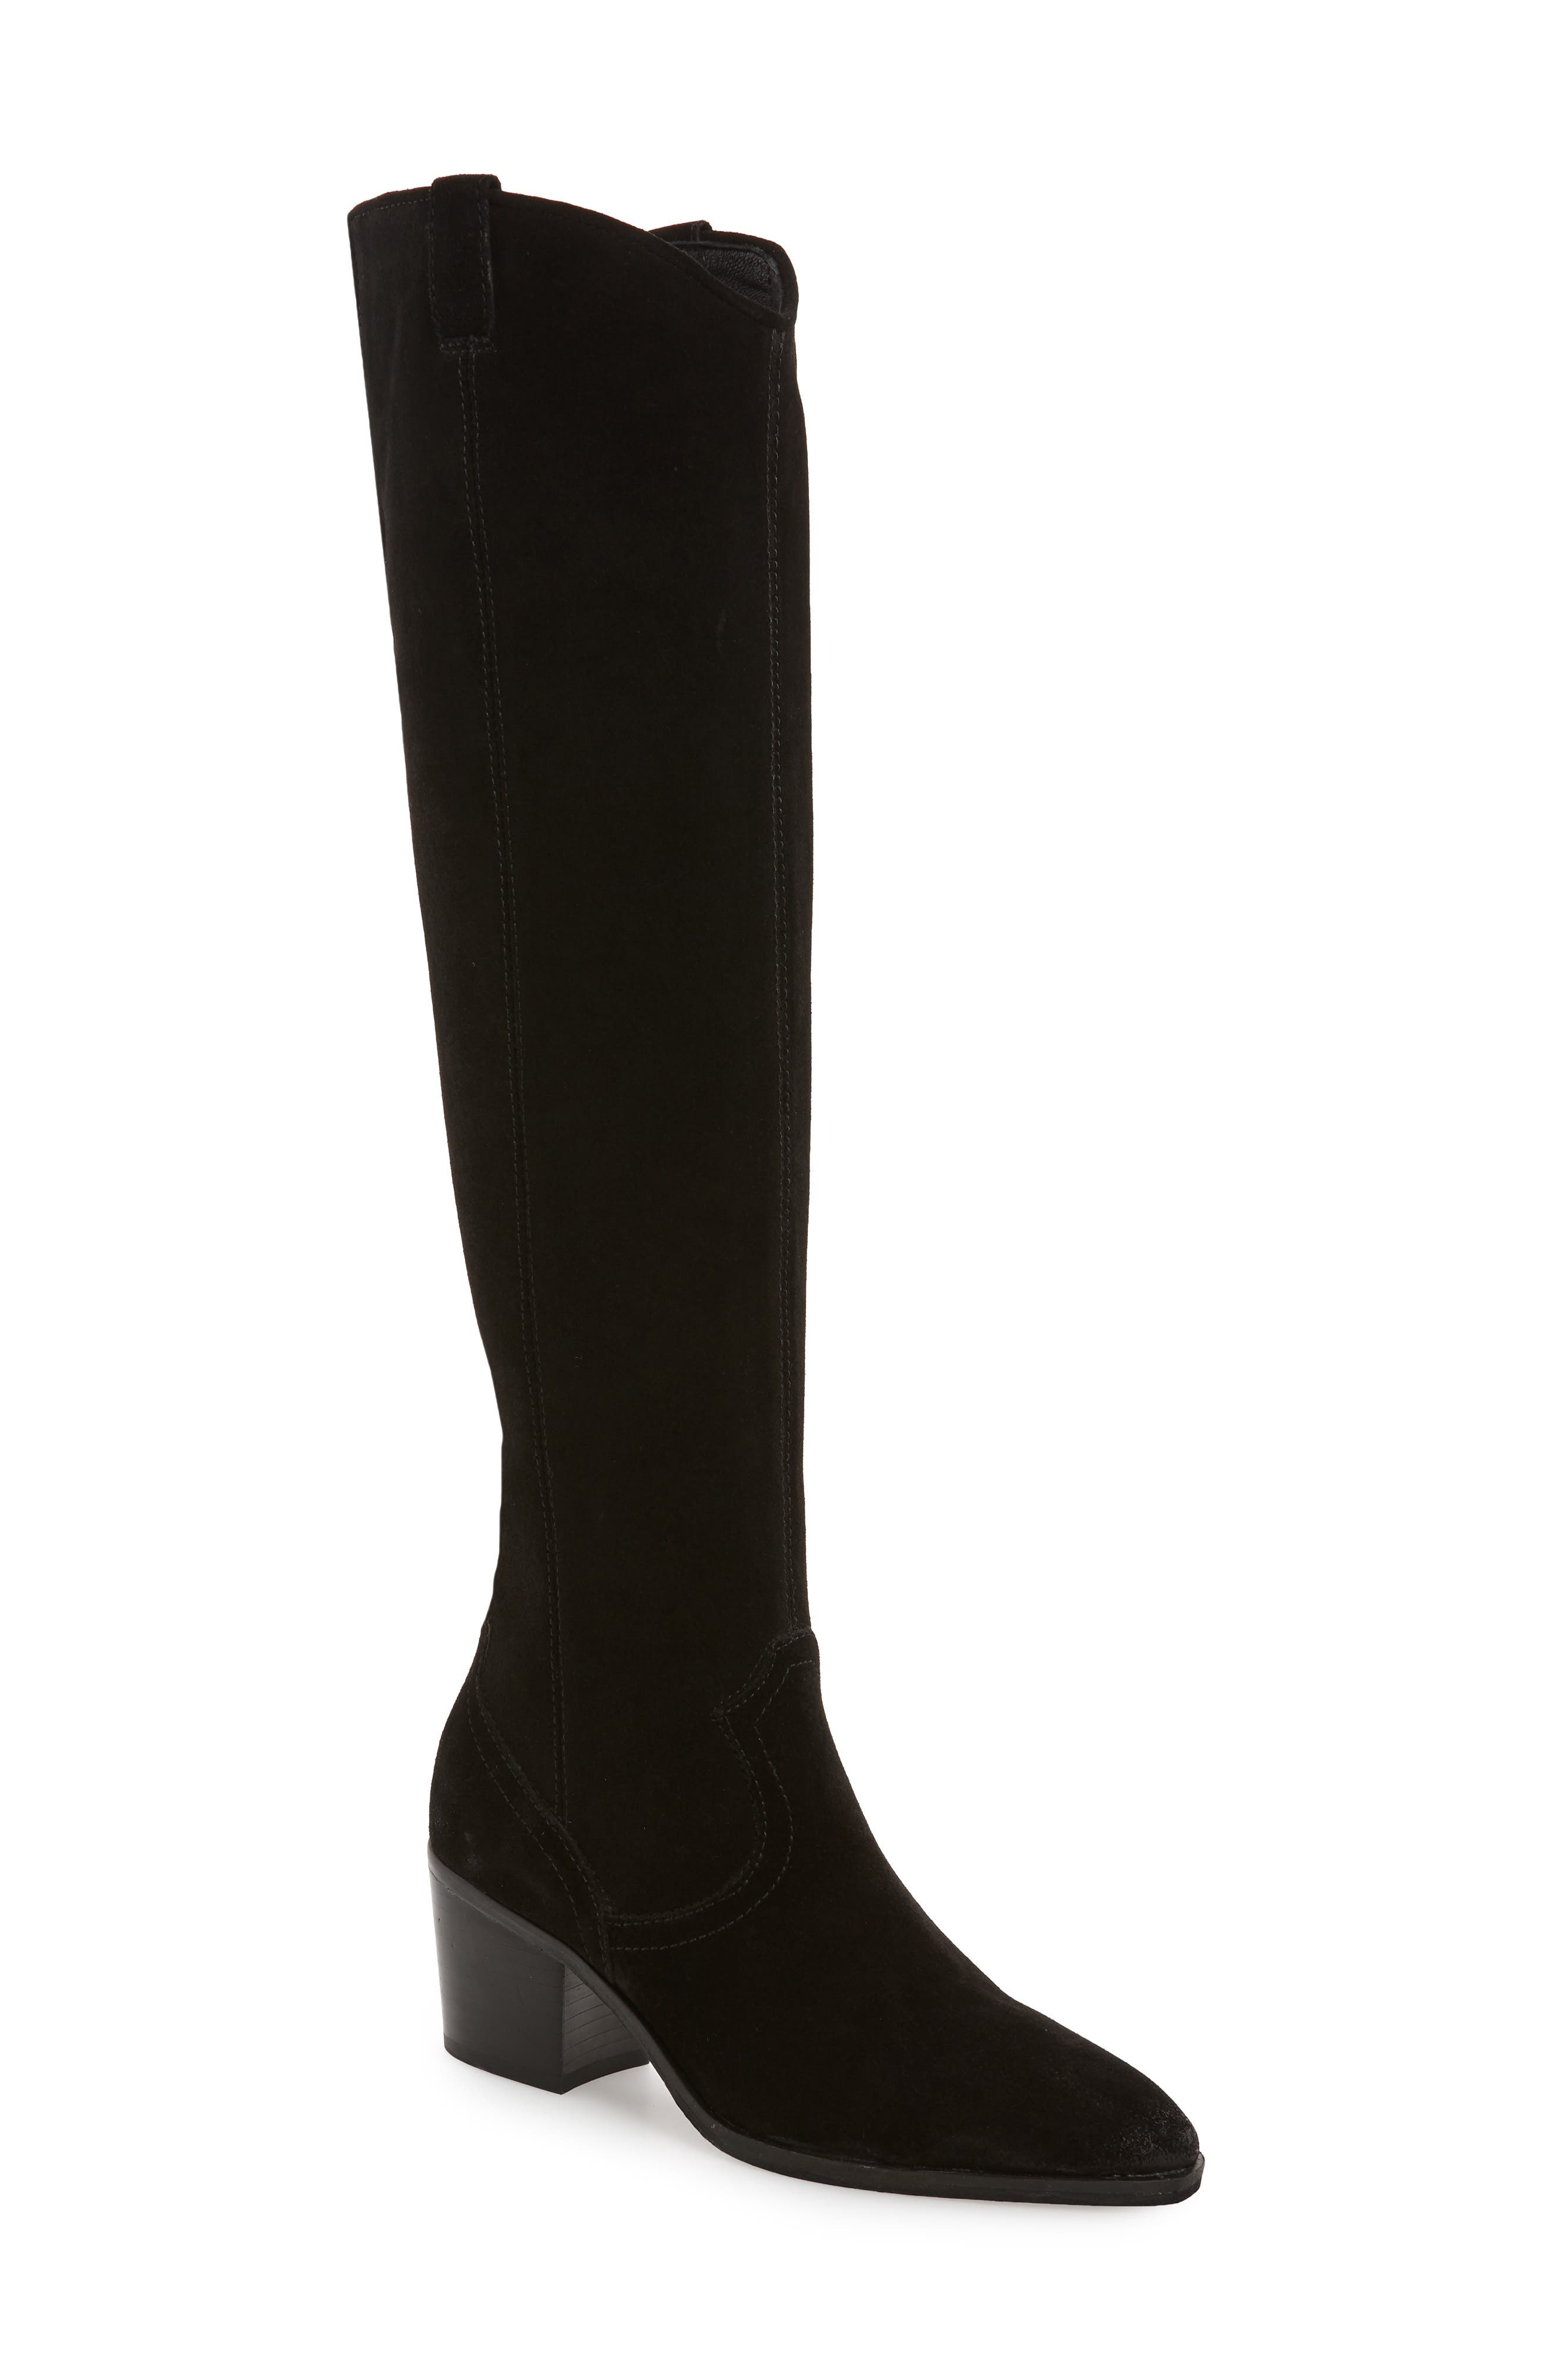 Delano Over the Knee Boot,                             Main thumbnail 1, color,                             BLACK LEATHER